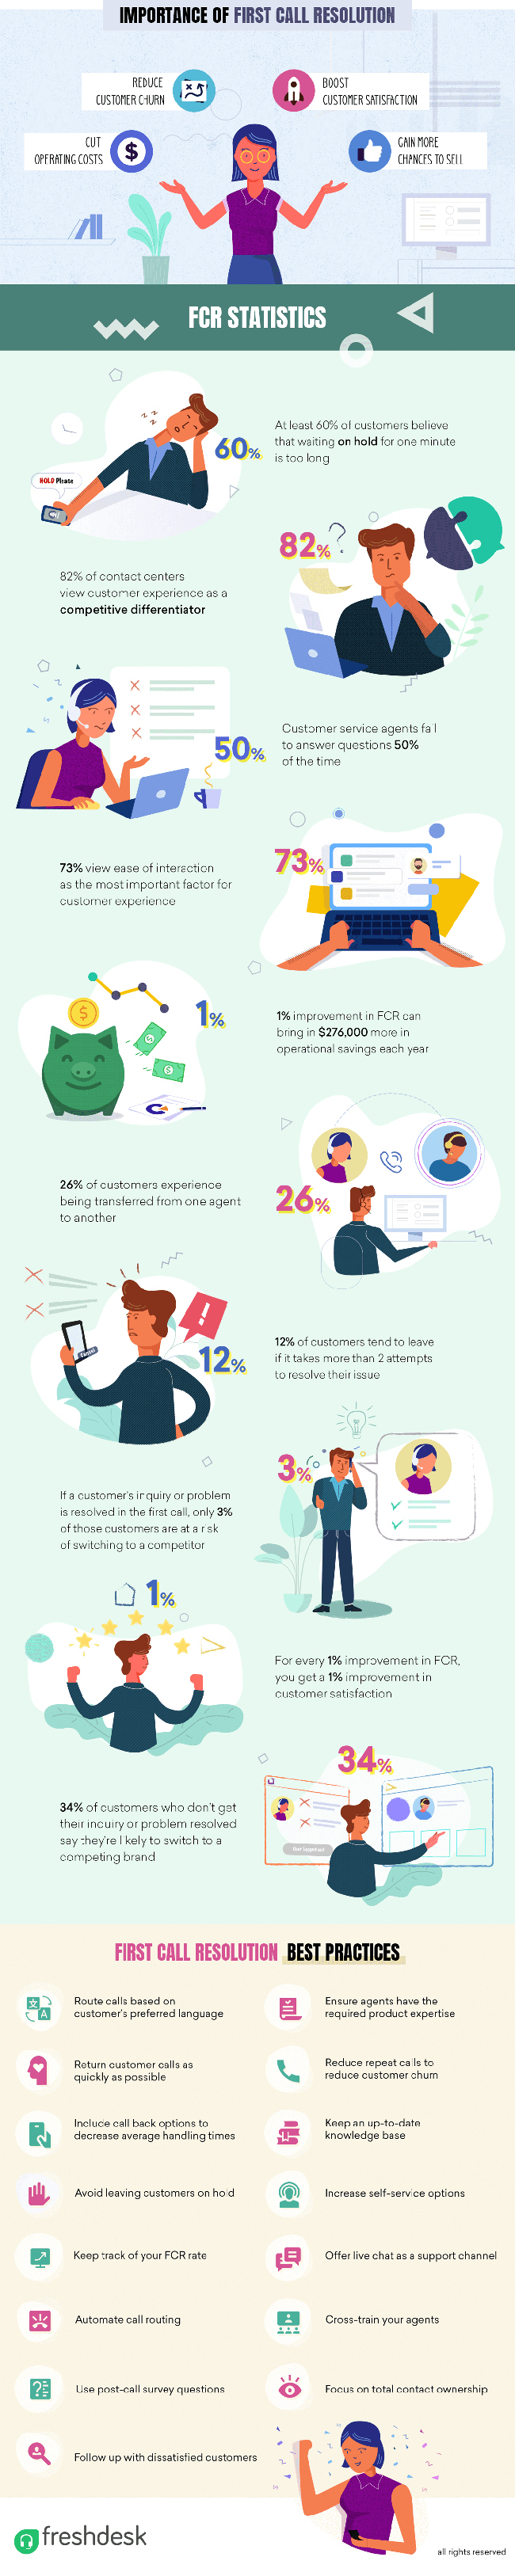 15 Best Practices for First Call Resolution [Infographic]